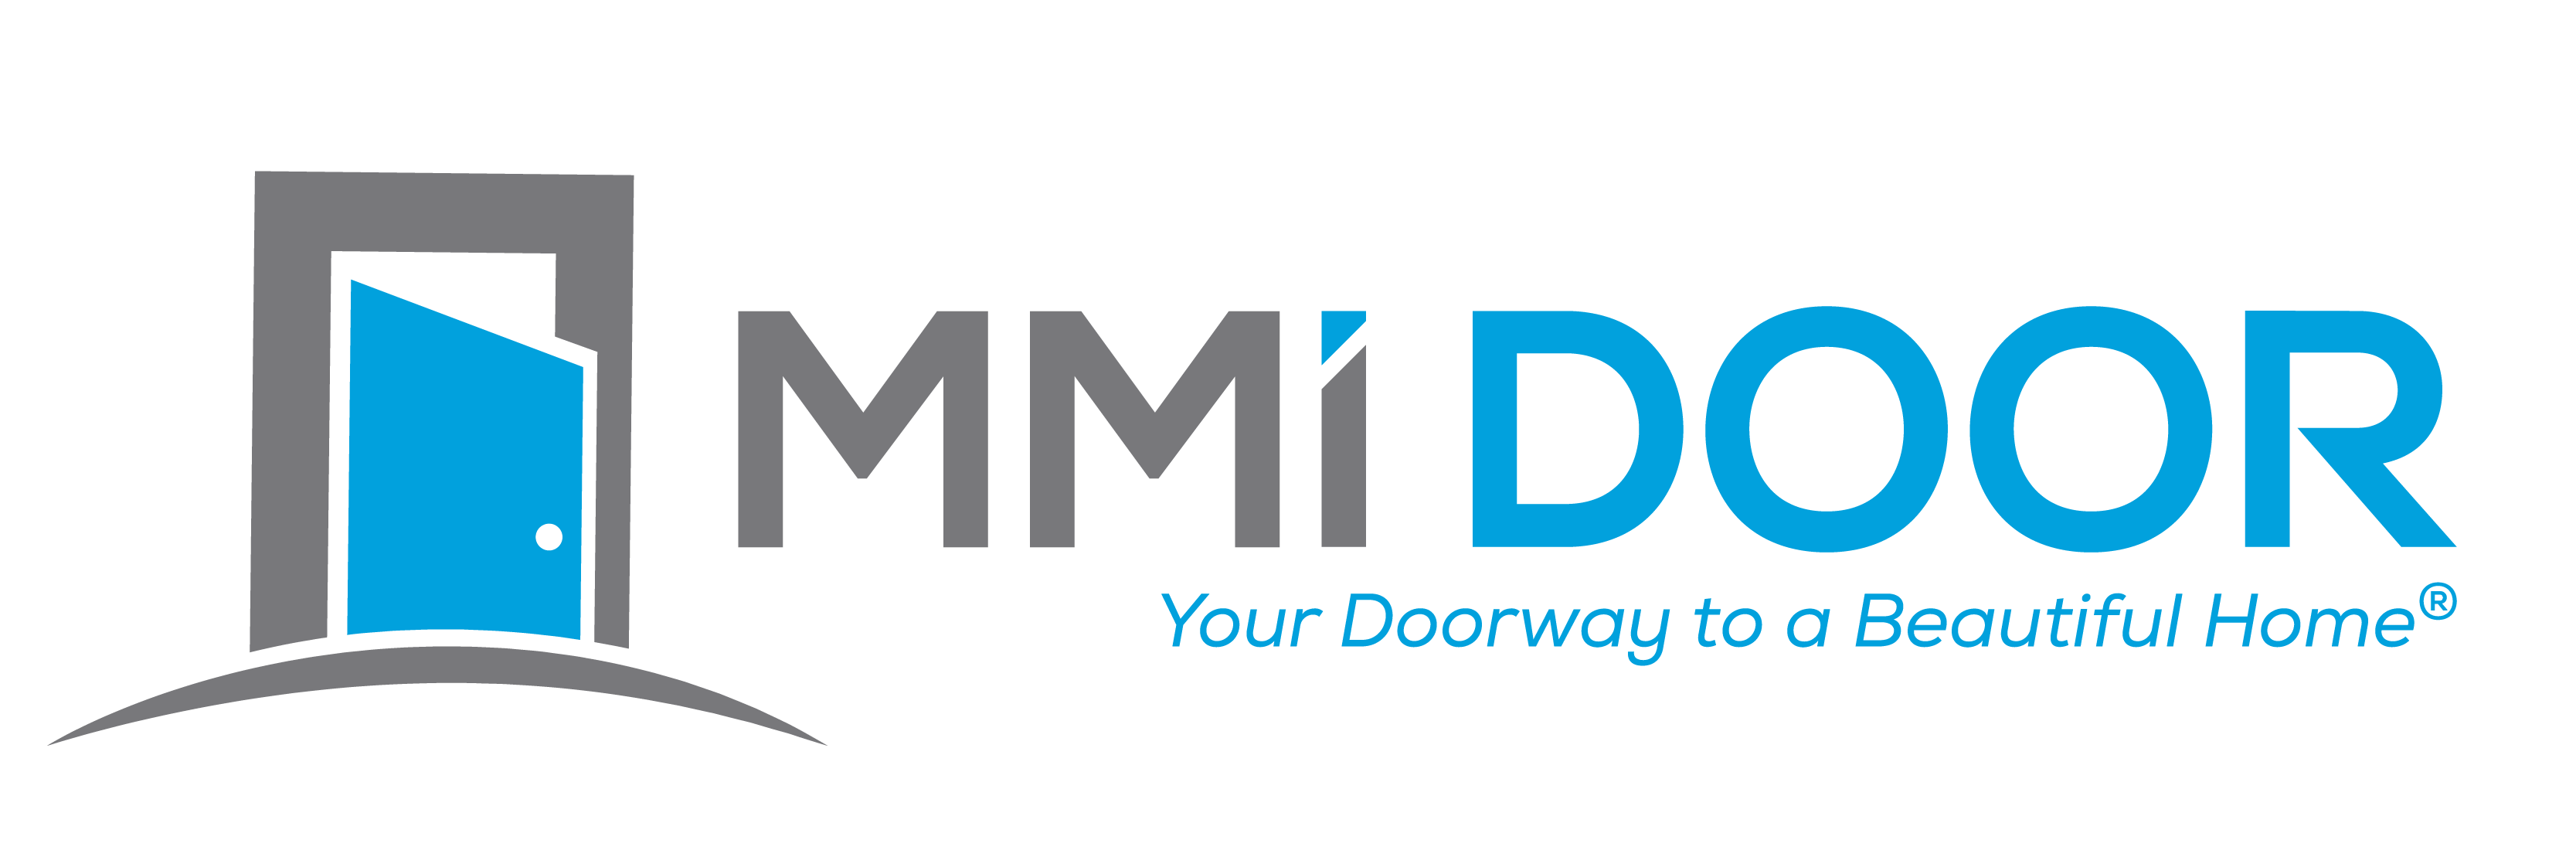 MMI Door-official-horizontal-w_slogan-01